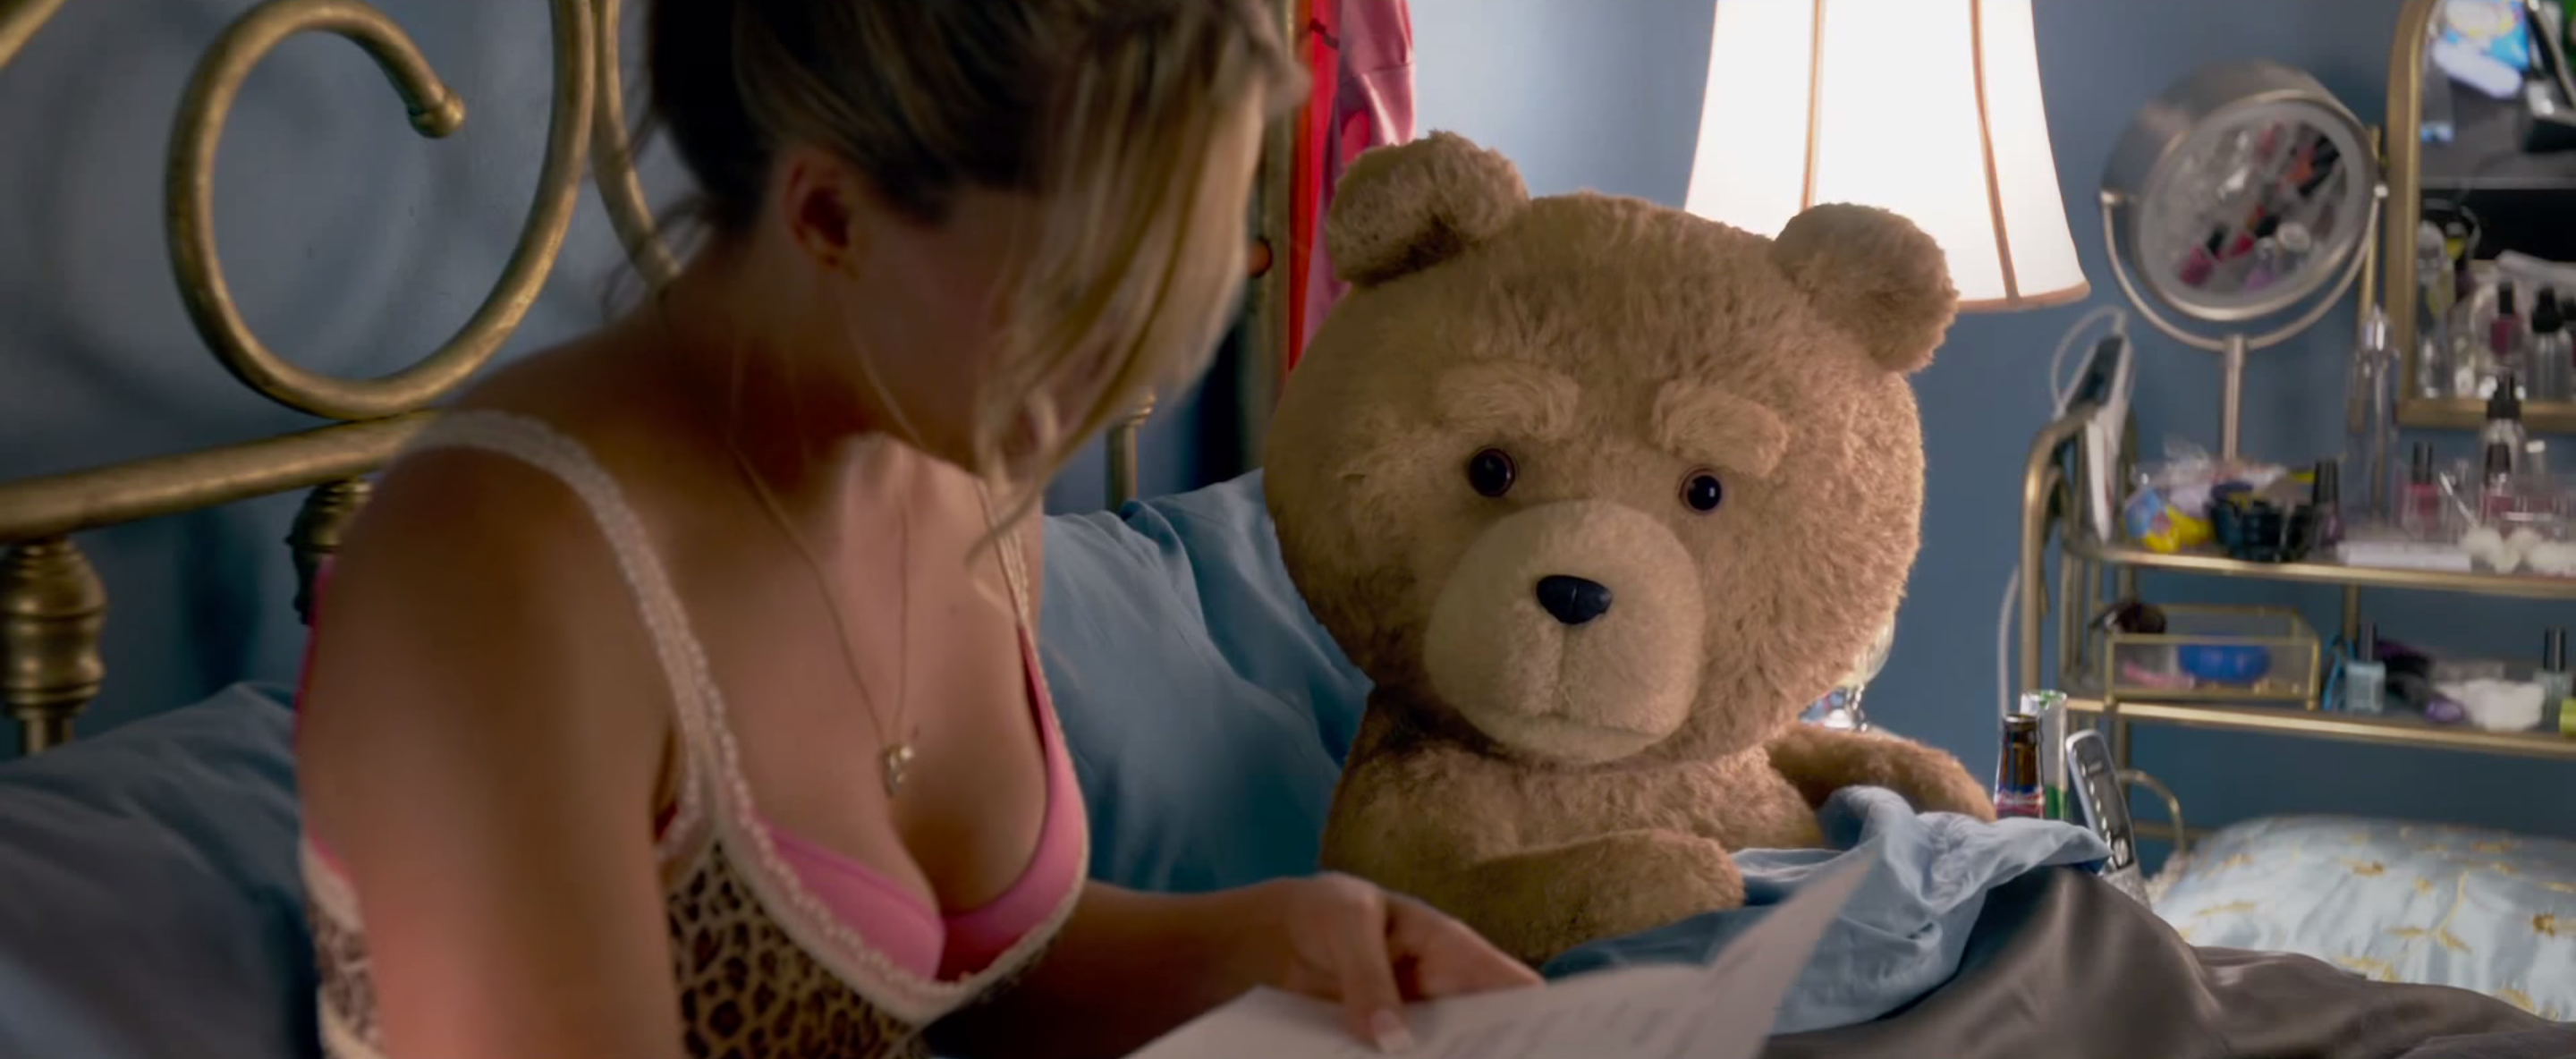 Ted_2-Movie_HD_Wallpapers-6